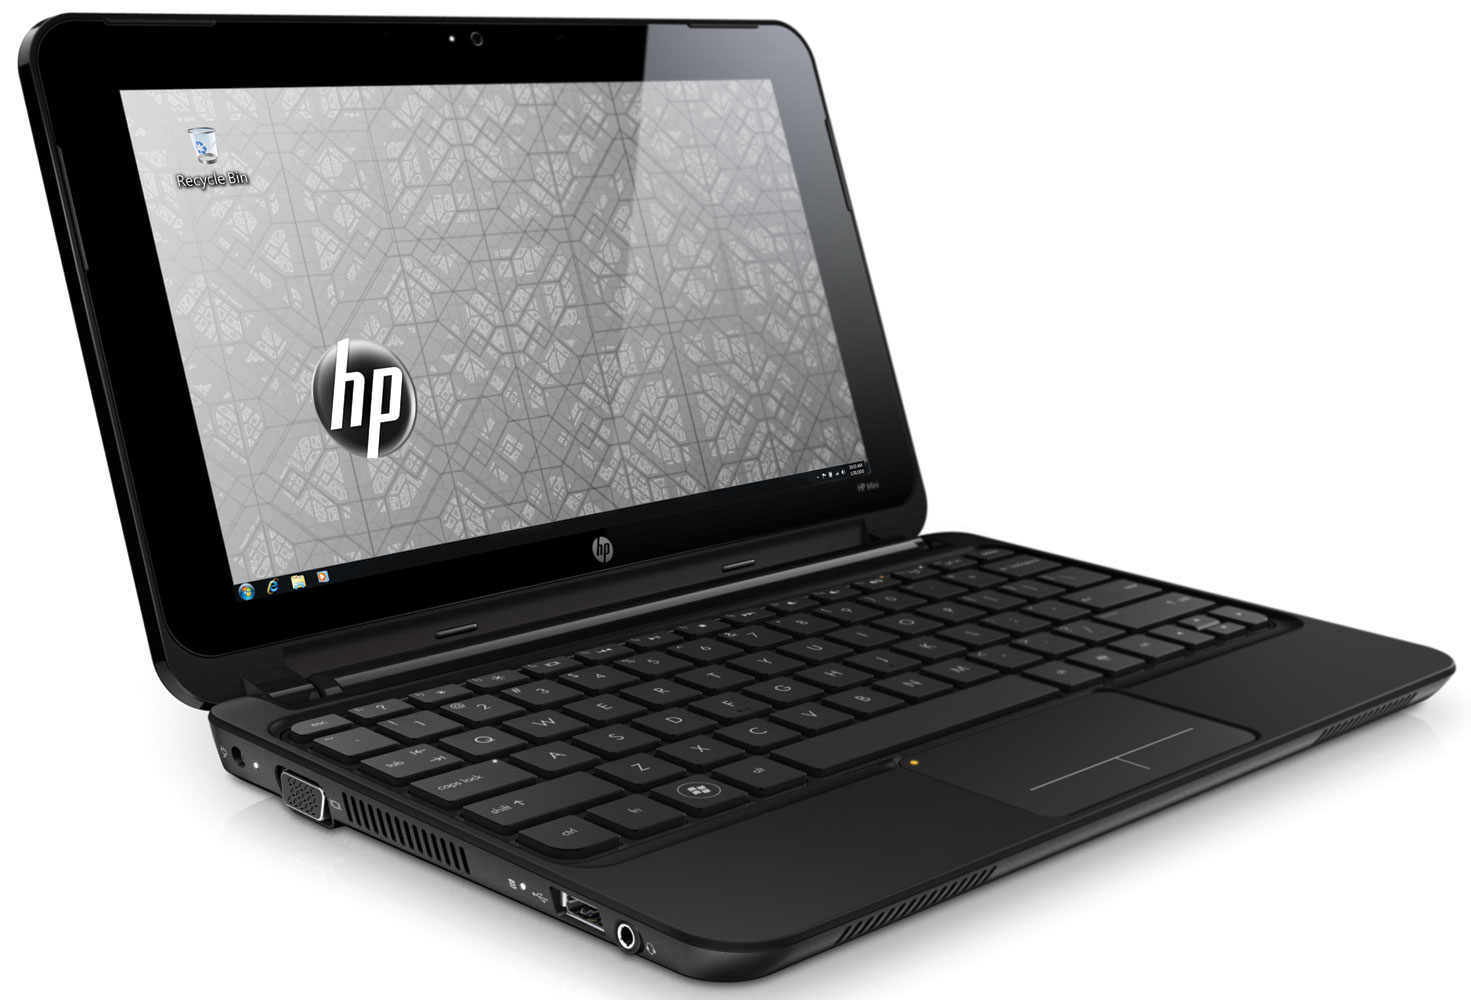 HP Mini 110-1131DX Notebook Linux